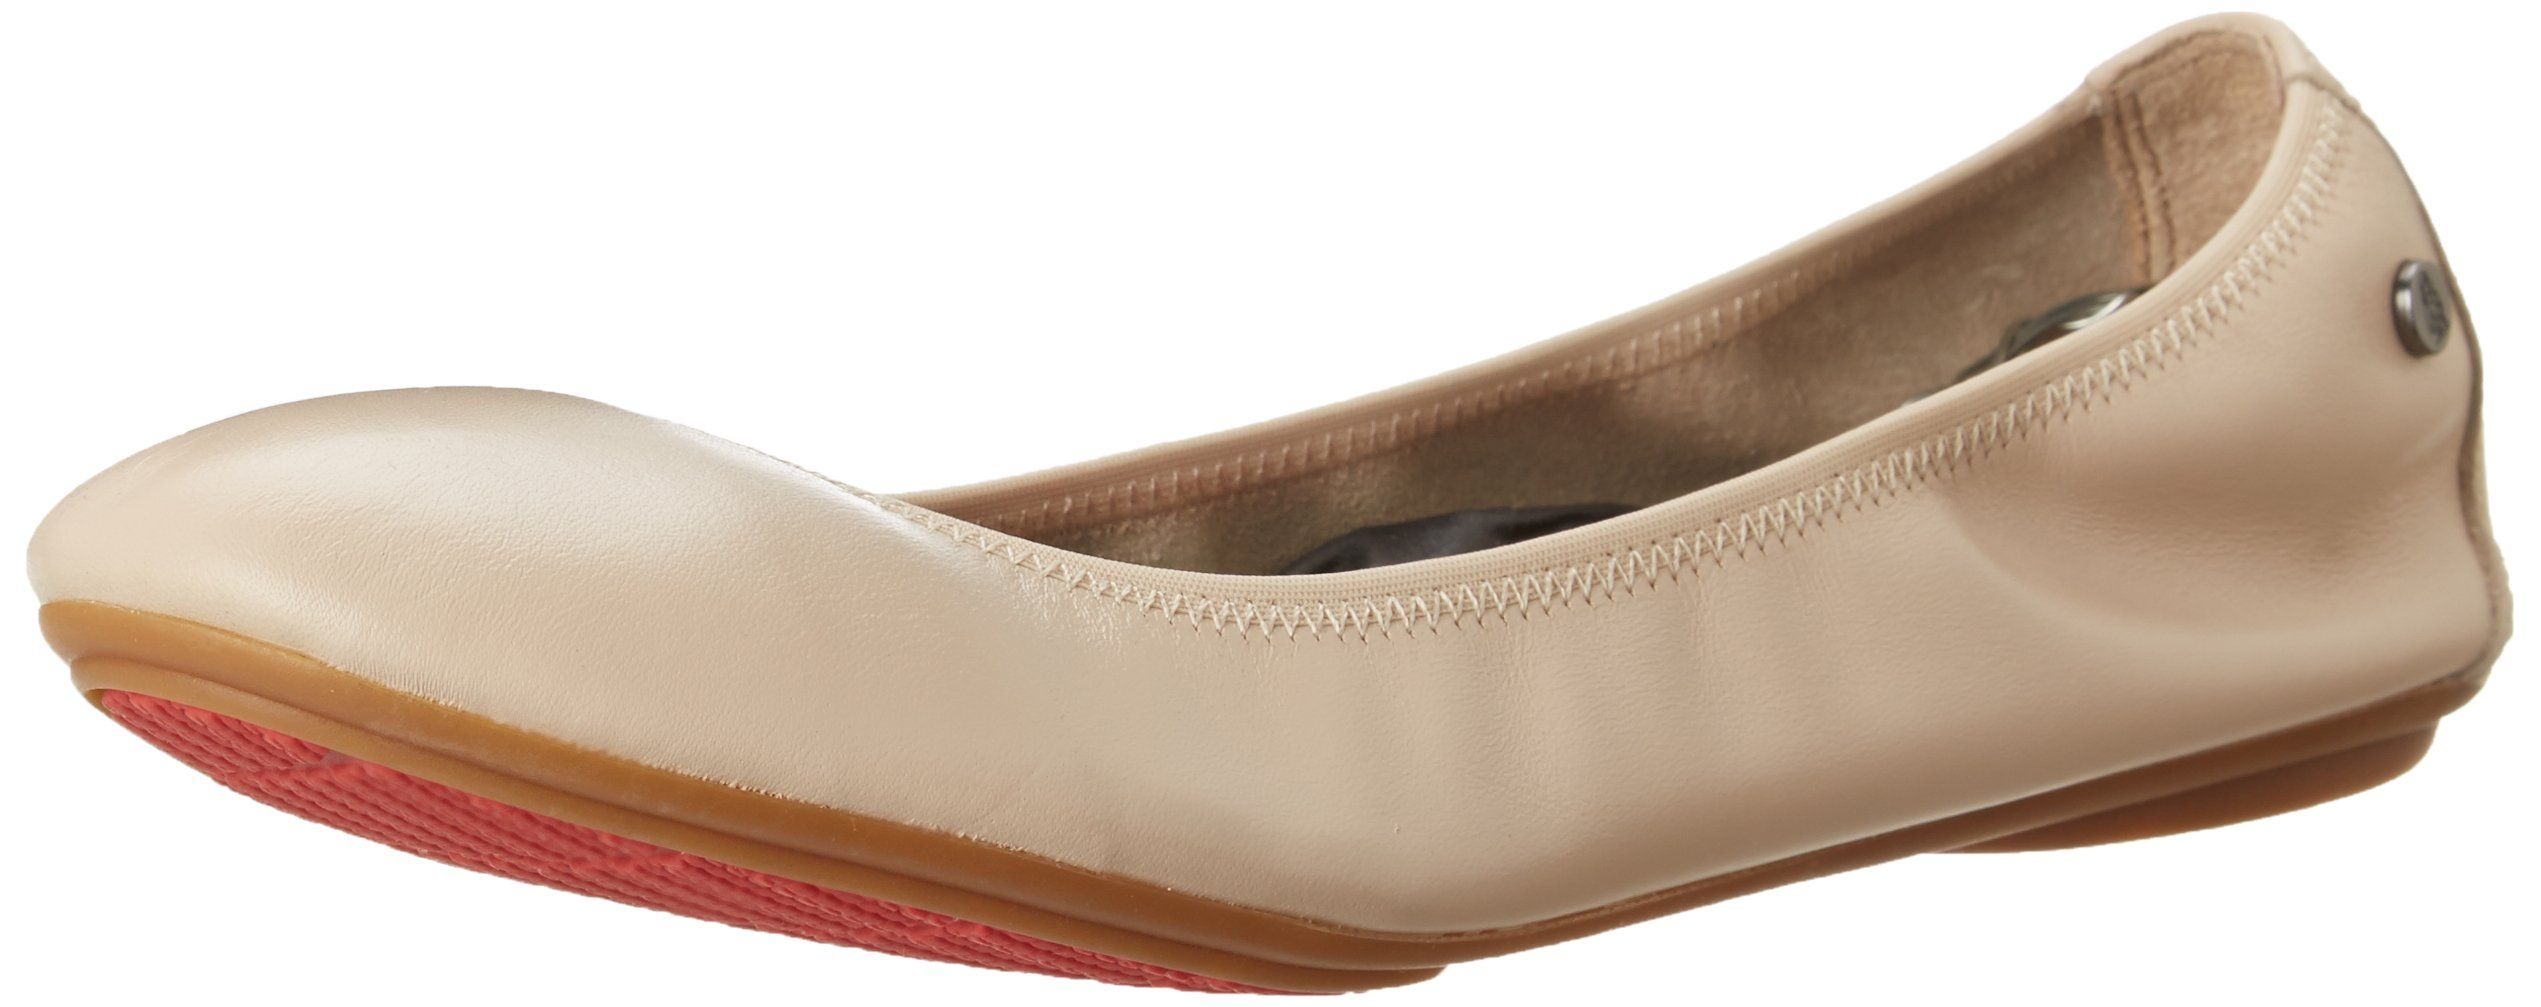 Amazon Com Hush Puppies Women S Chaste Ballet Flat Shoes With Images Hush Puppies Women Flat Shoes Women Hush Puppies